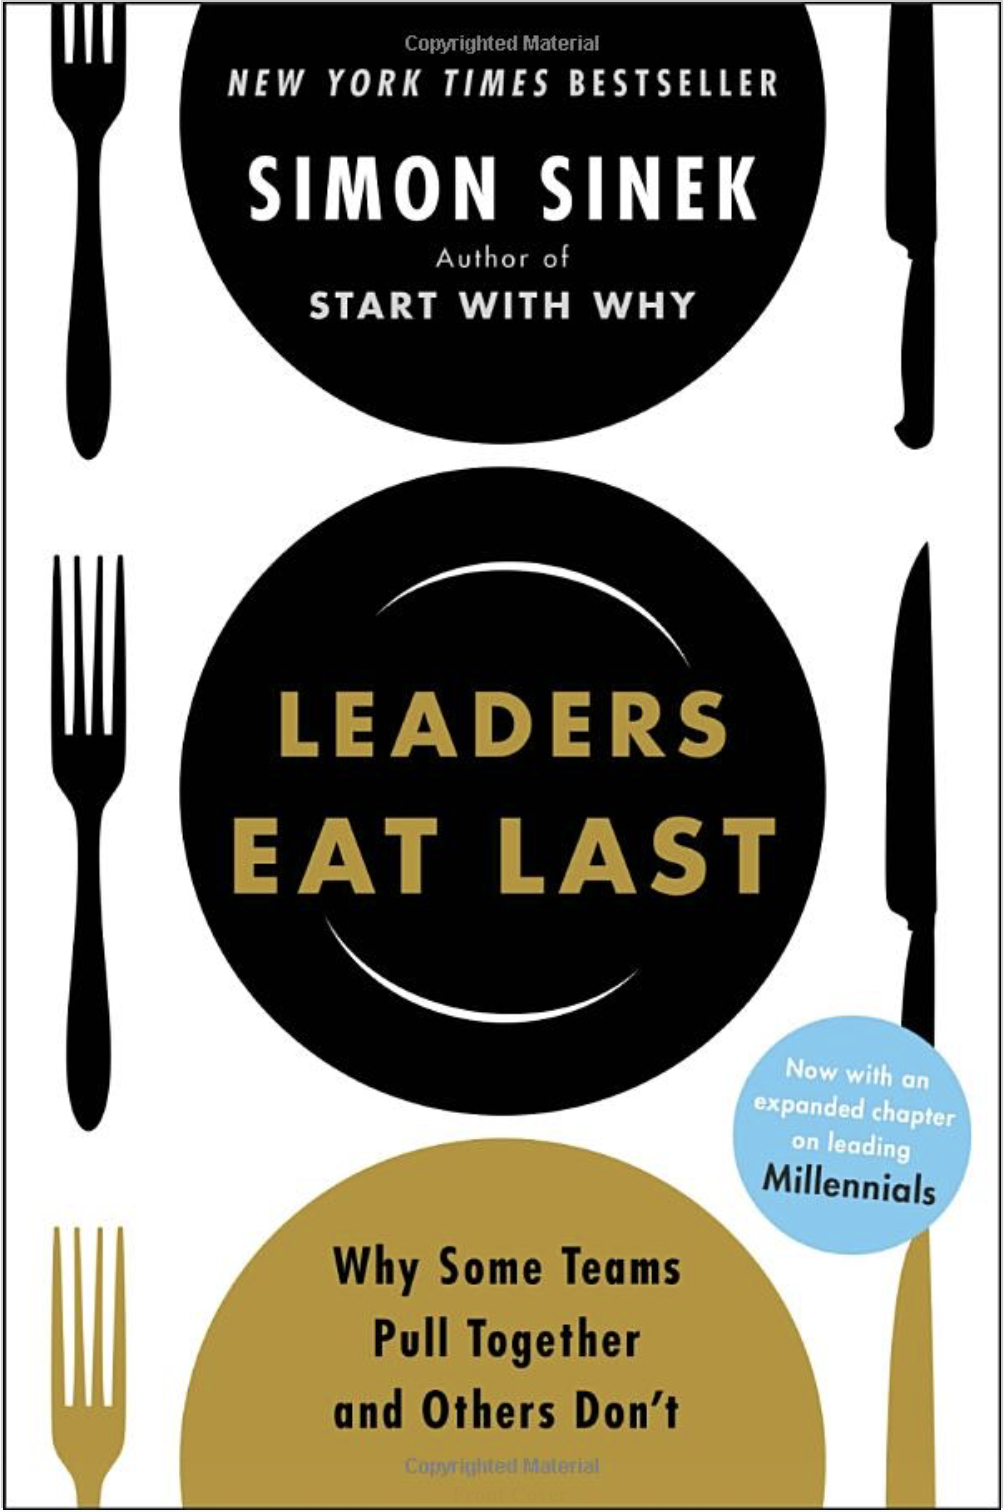 Book cover of Simon Sinek's book 'Leaders Eat last', summer reading list, diversity, inspiration